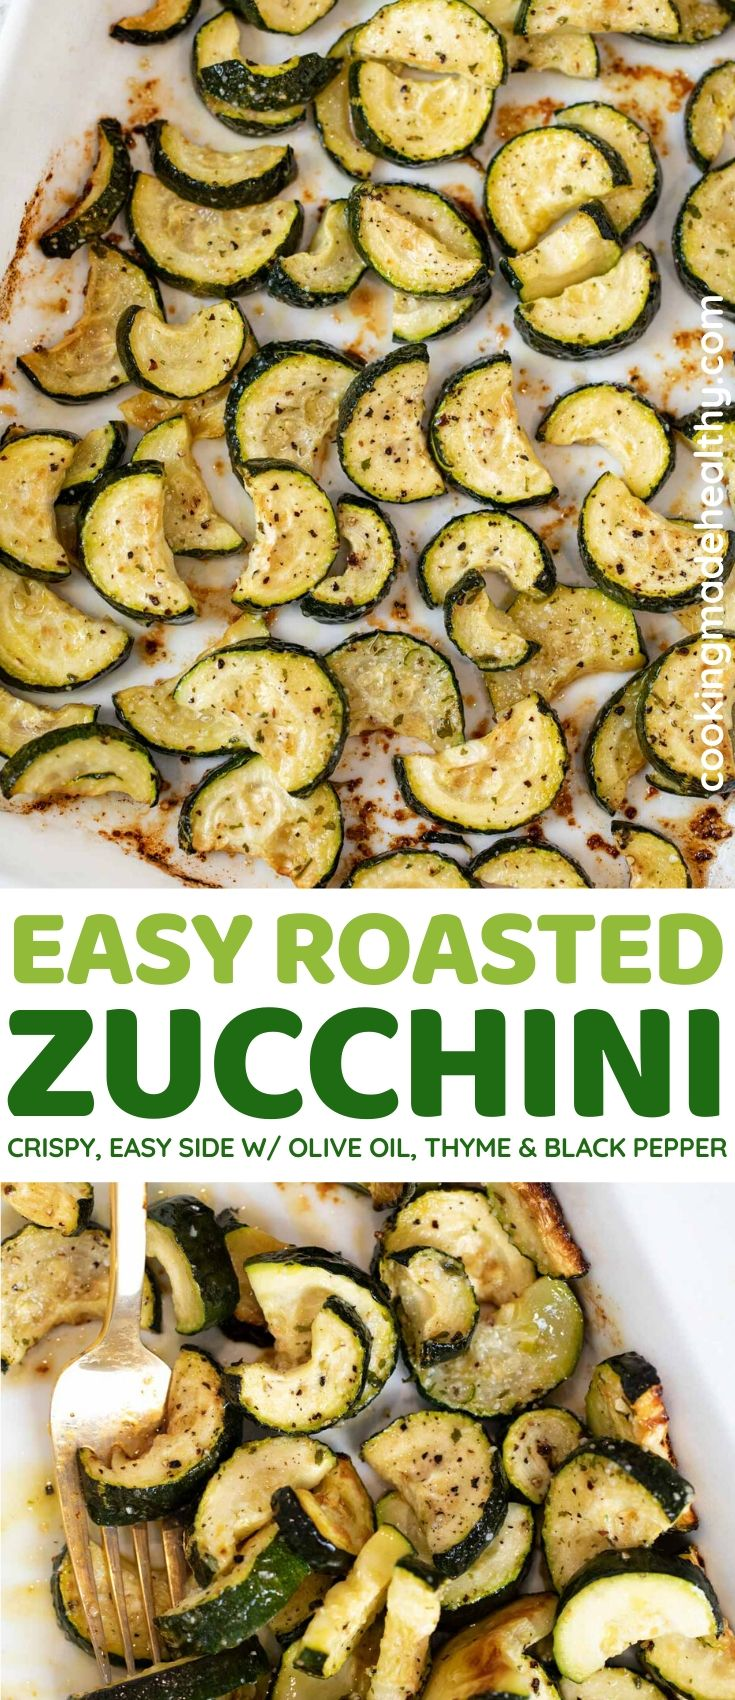 Roasted Zucchini collage